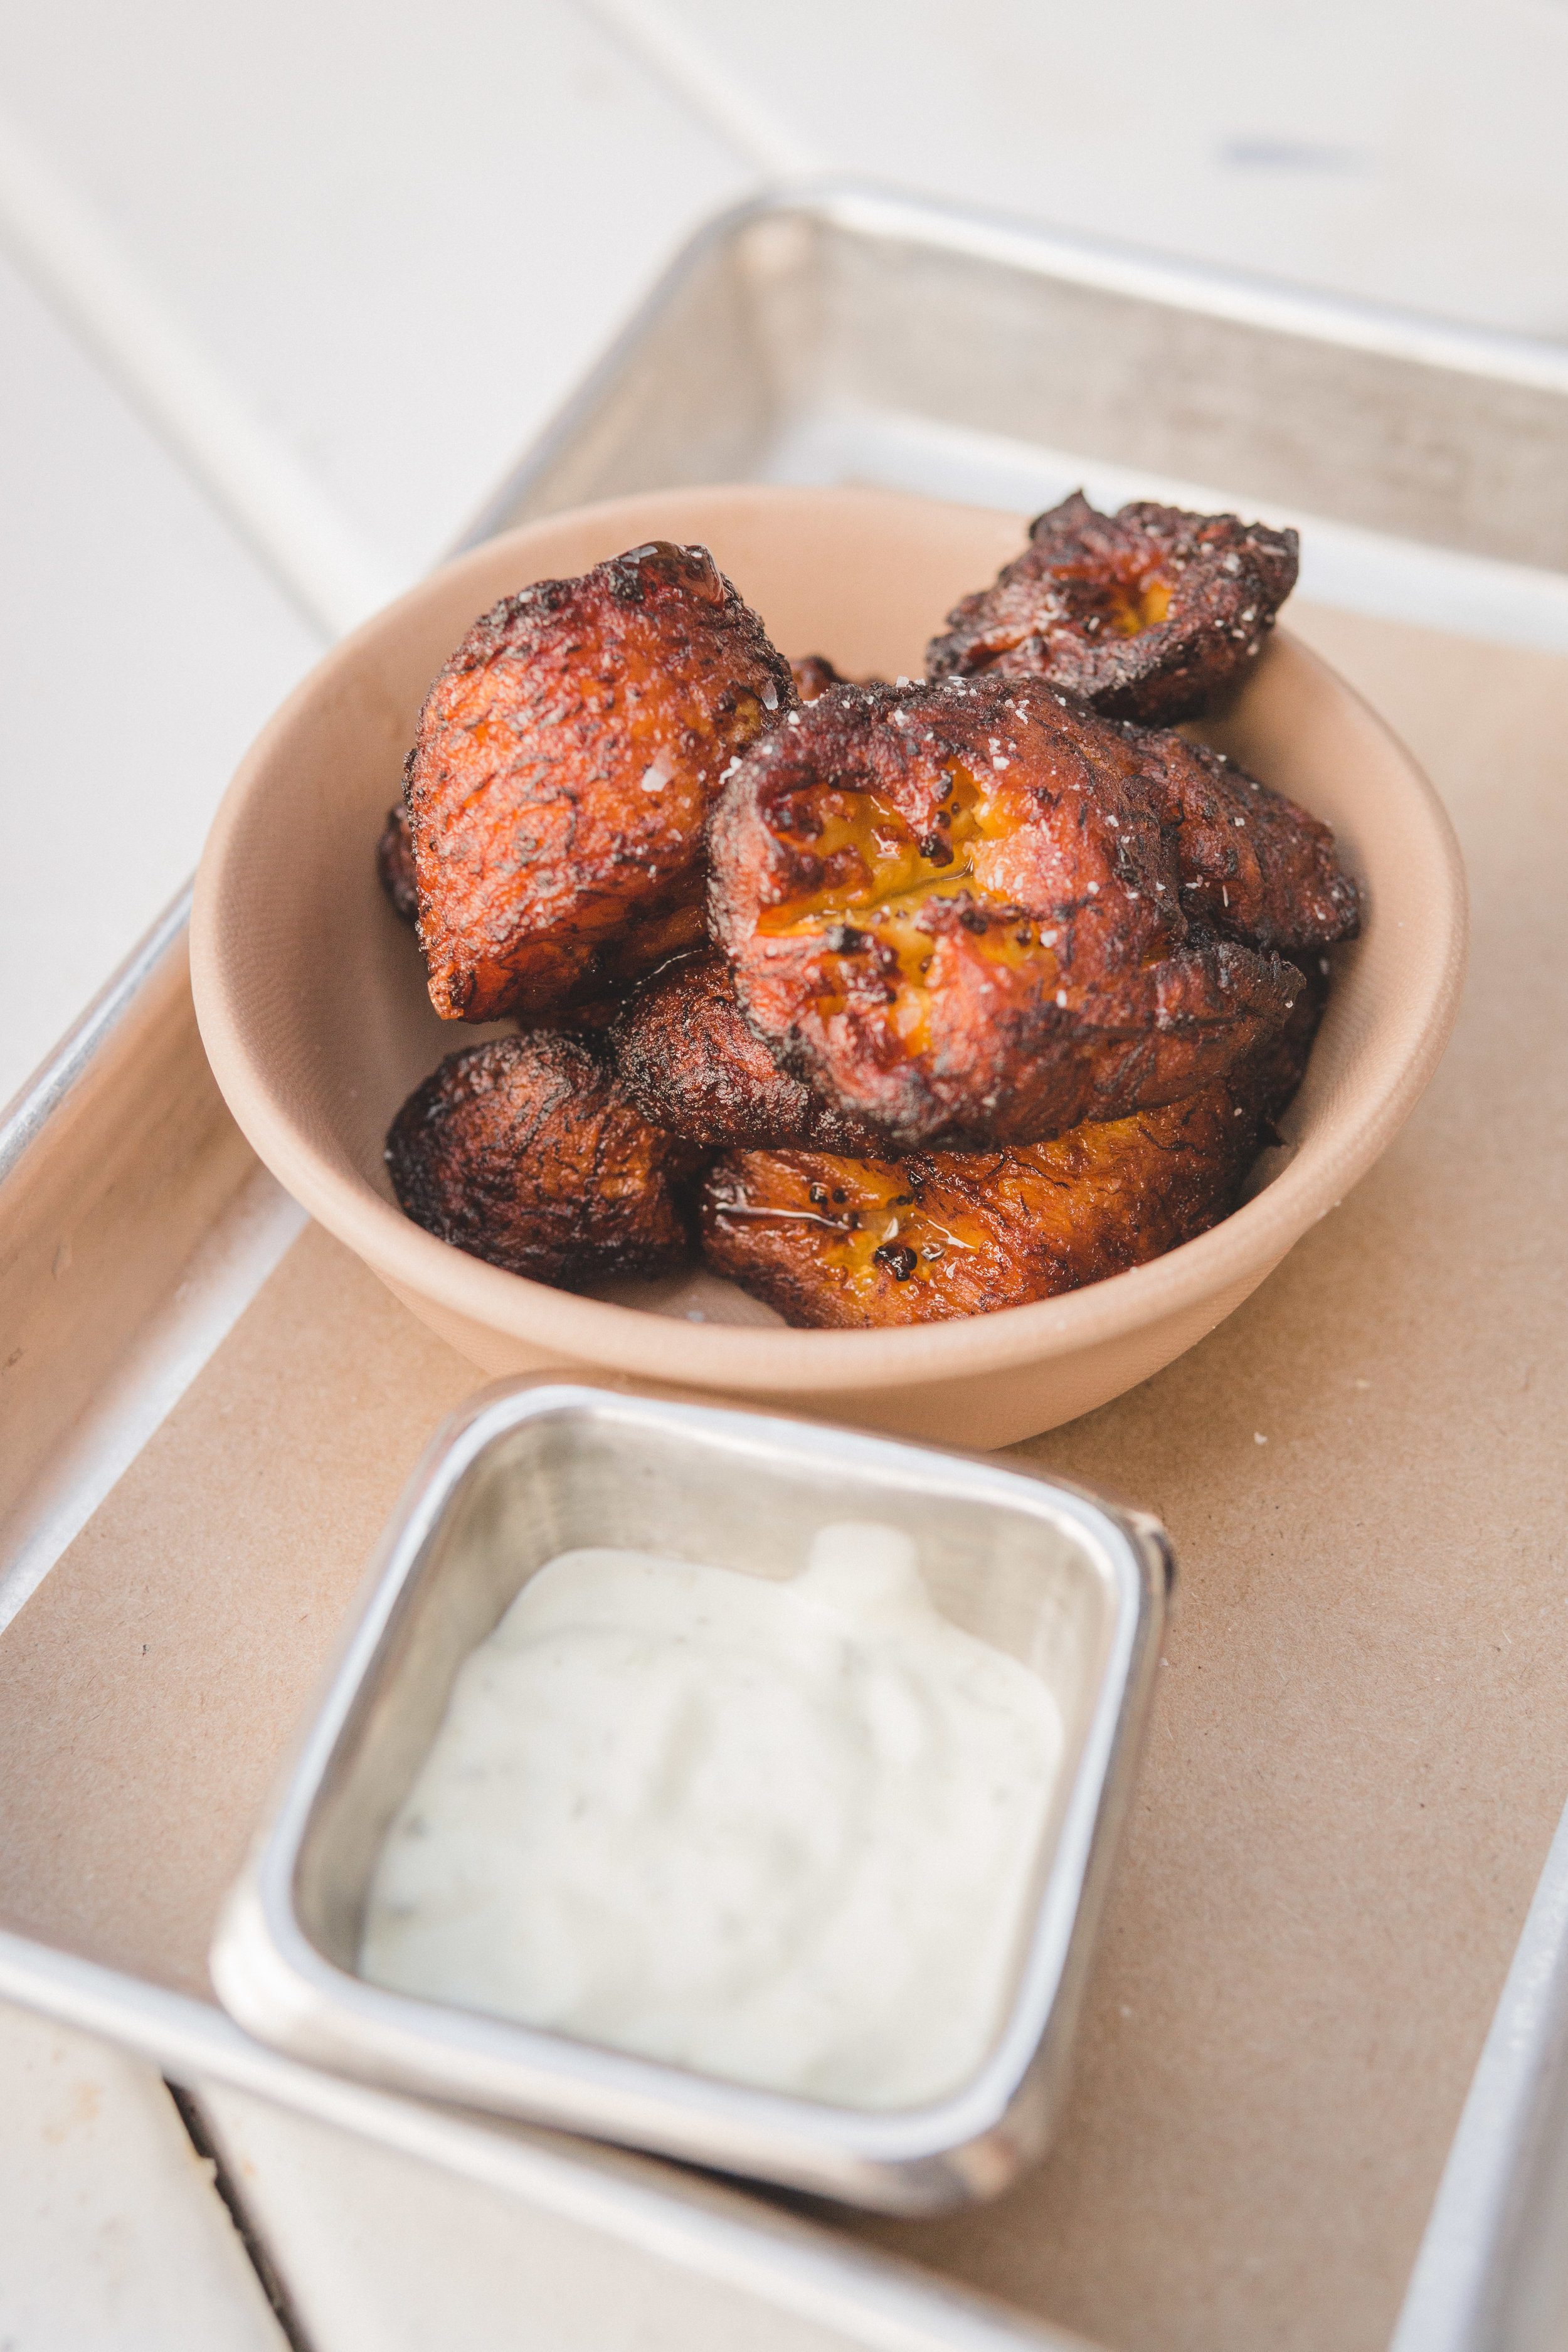 Plantains: Tossed in salt & cayenne pepper, served with a creamy gordita sauce